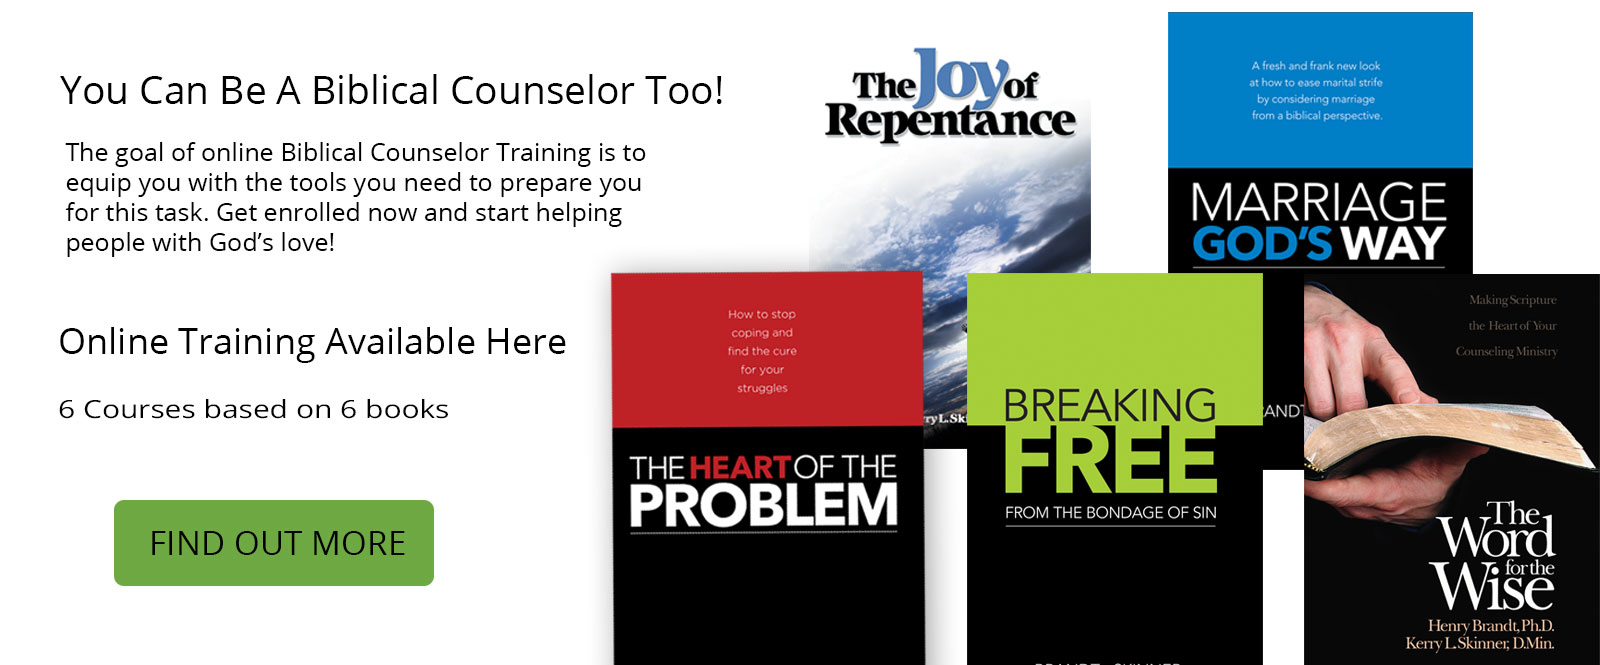 Online Biblical Counselor Training by Dr. Kerry Skinner